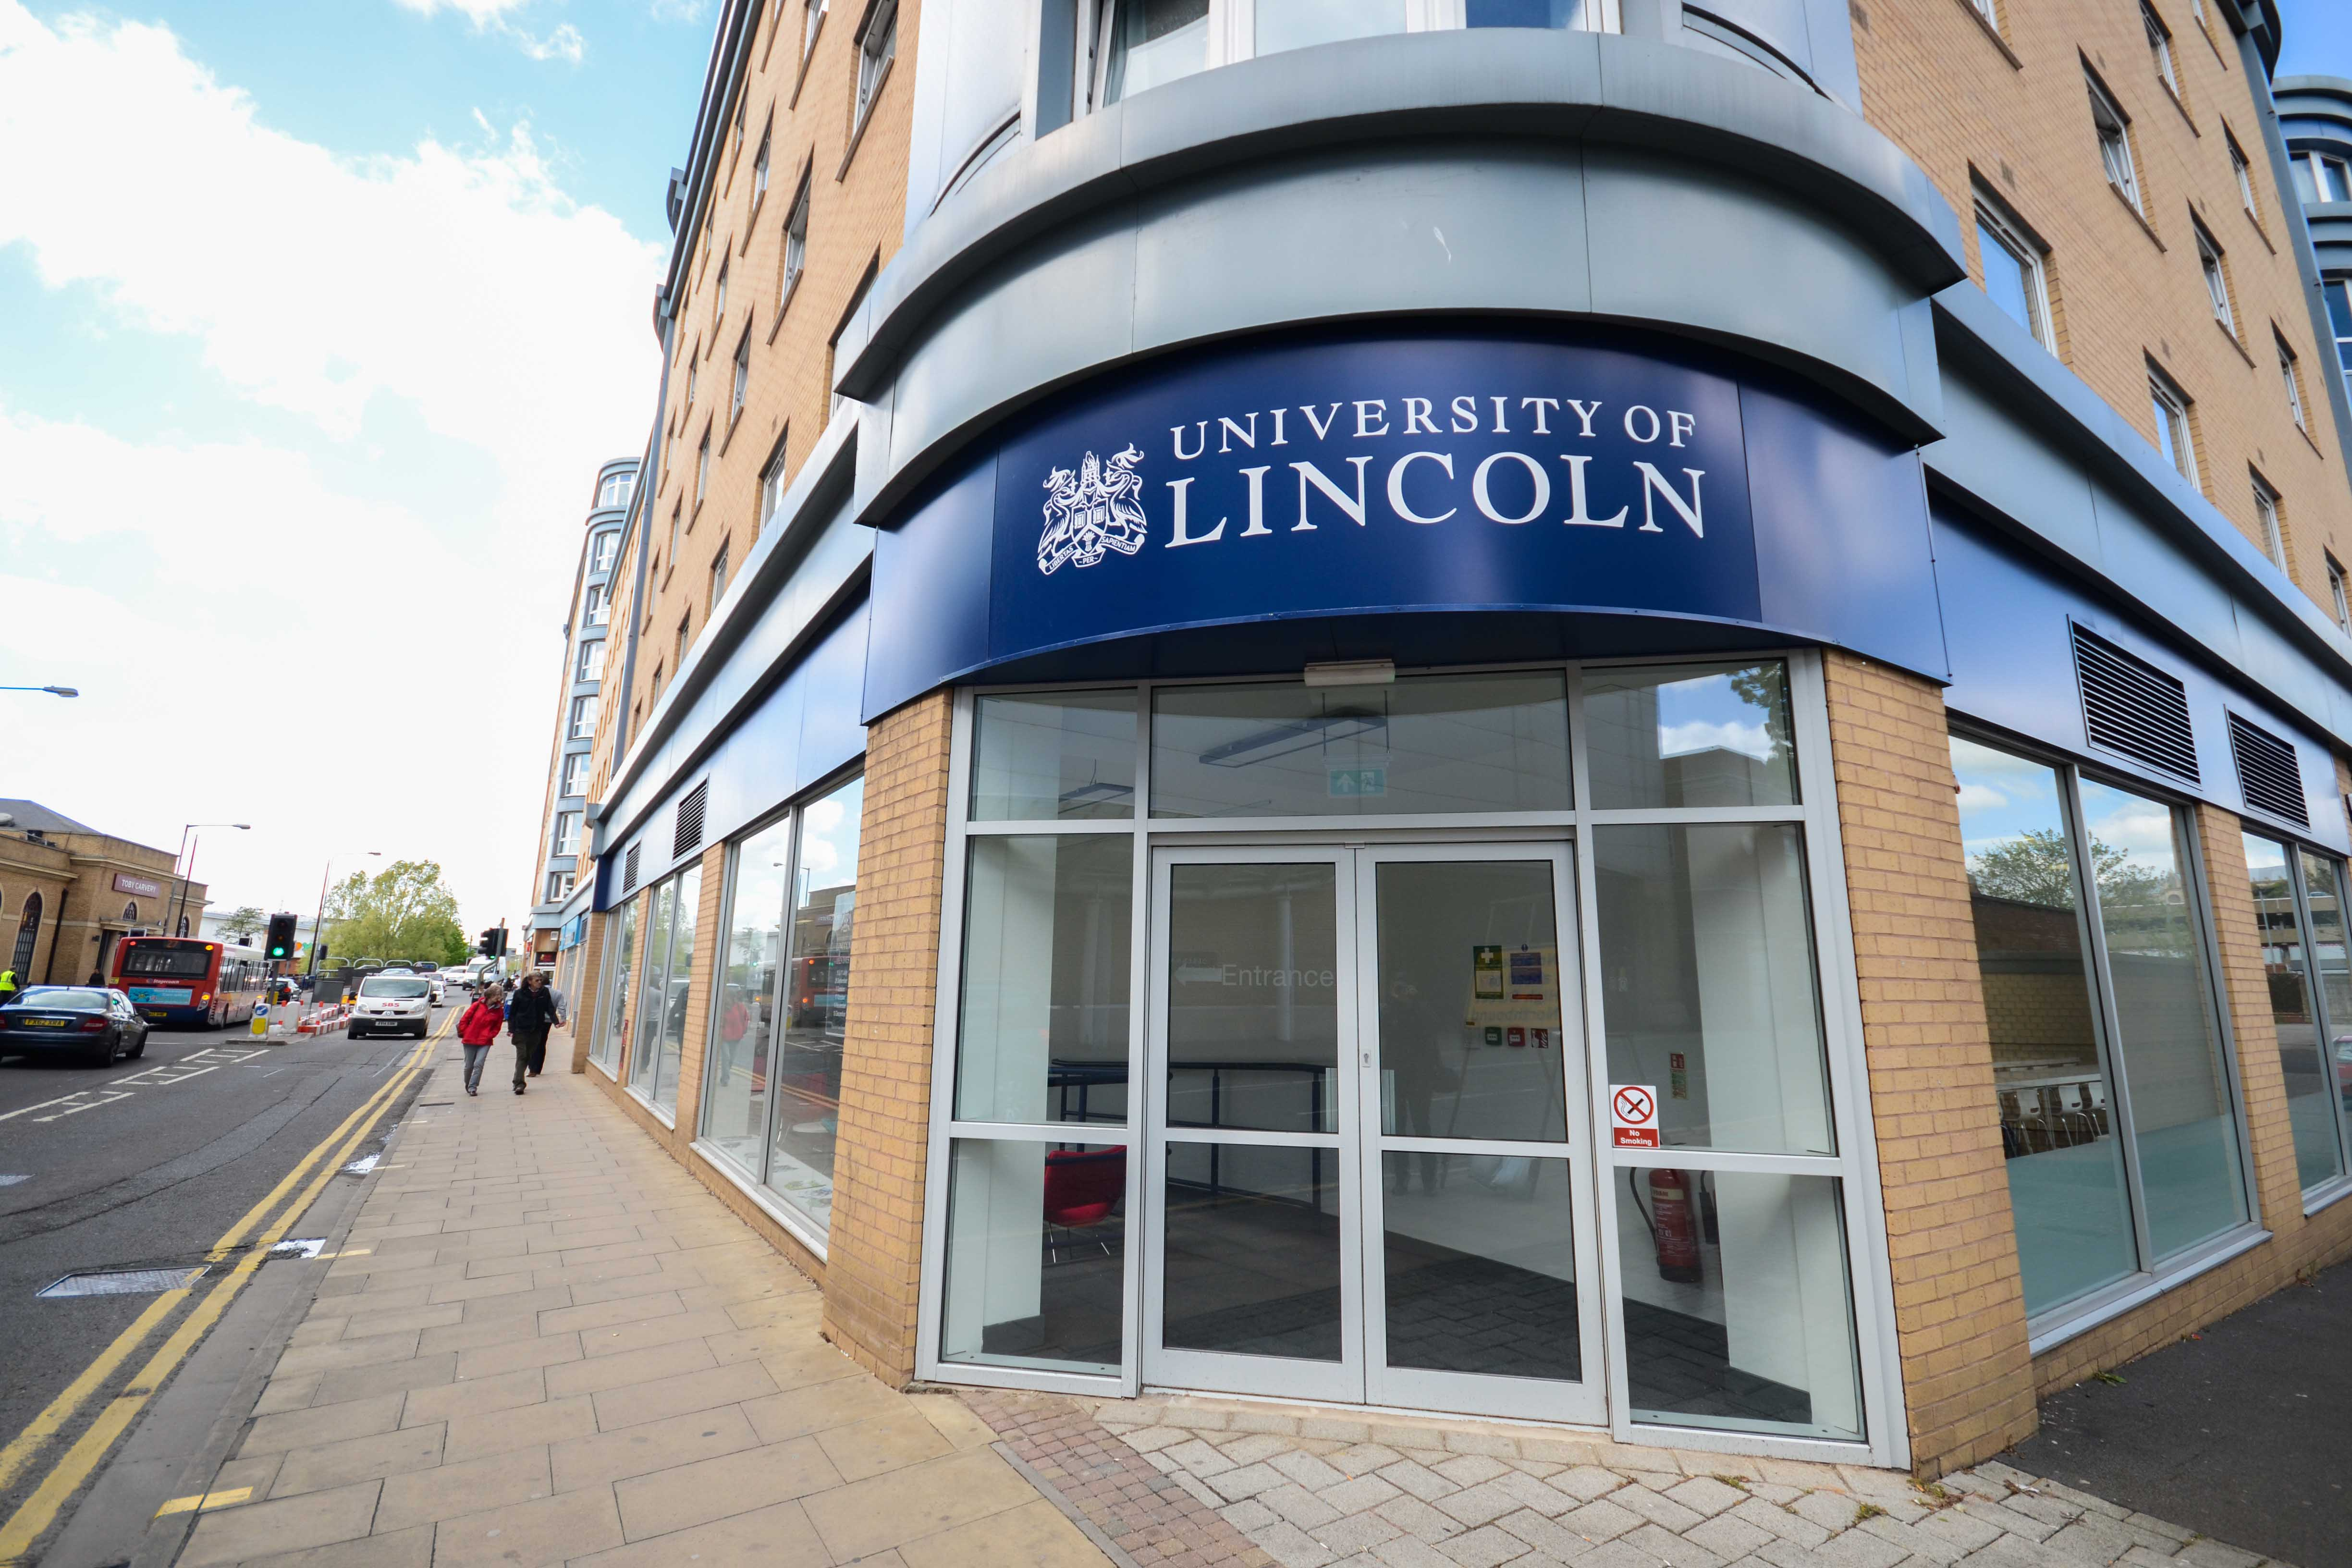 Image of a rounded front entrance to a ground floor section of a building. A University of Lincoln banner is above the doorway in blue.